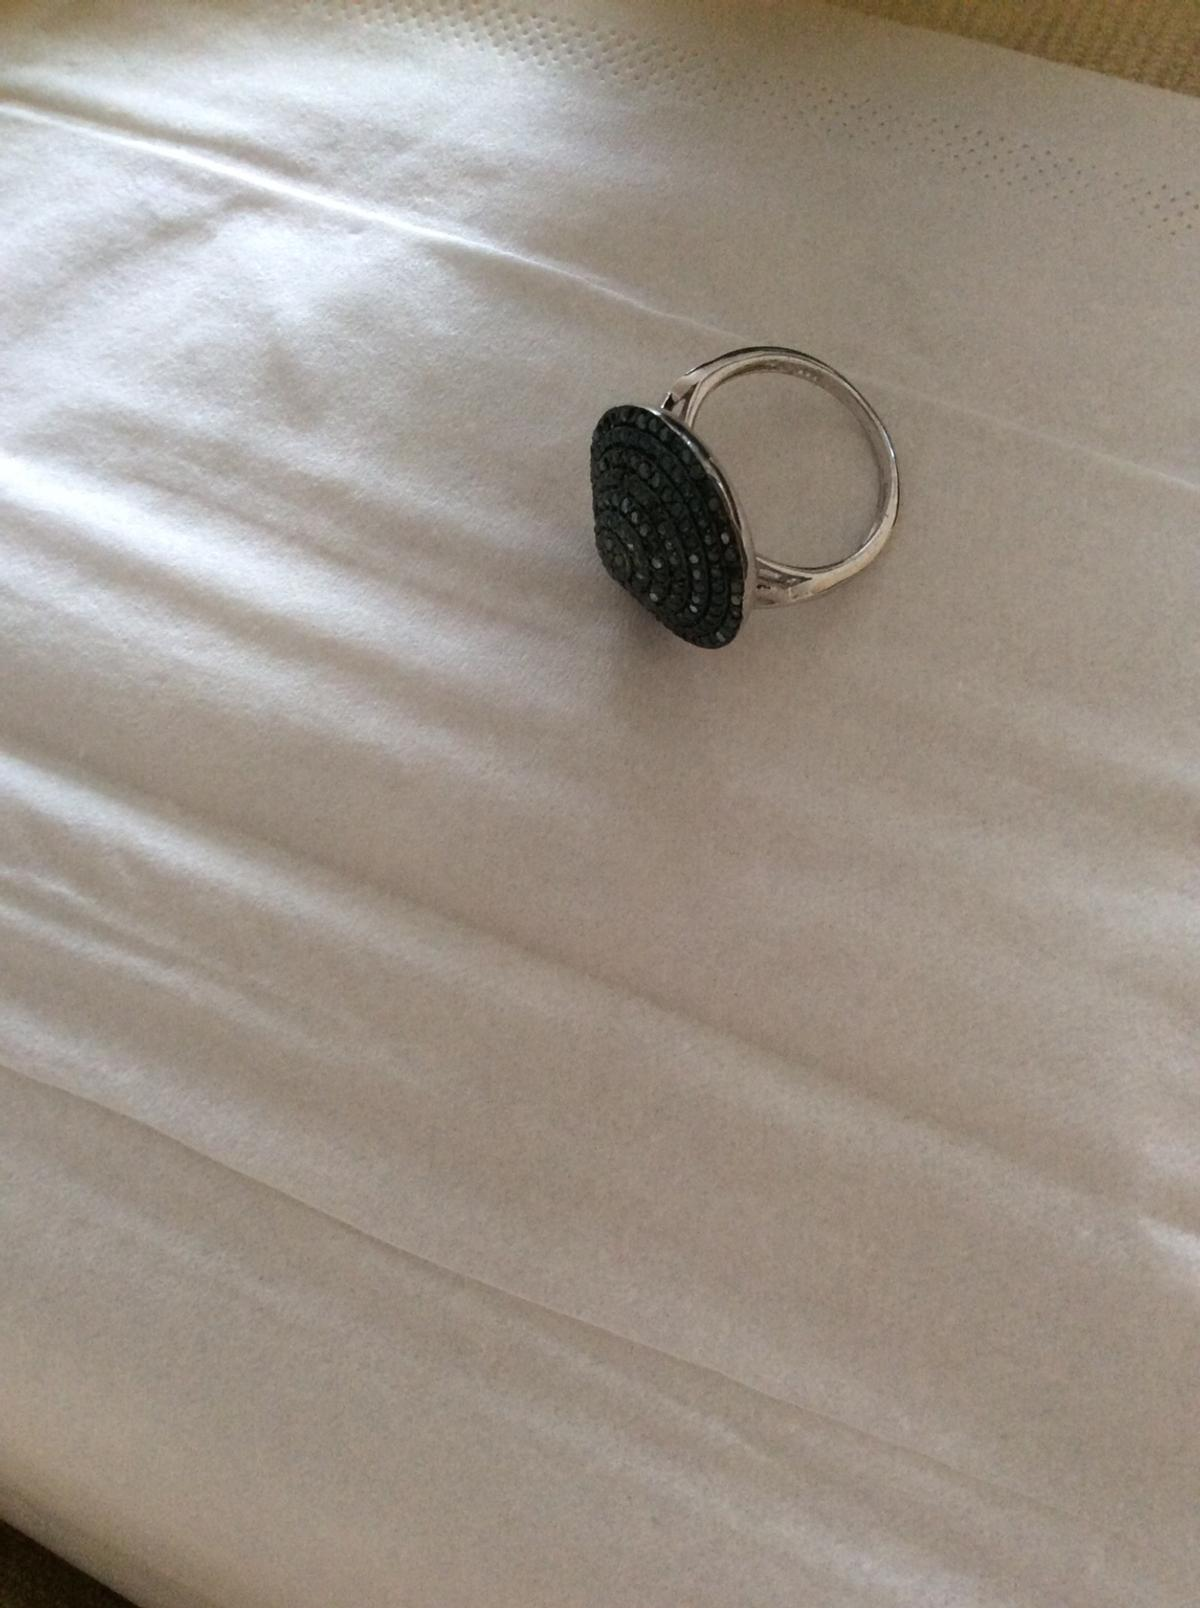 Blue Diamond Ring In S81 Bassetlaw For 100 00 For Sale Shpock